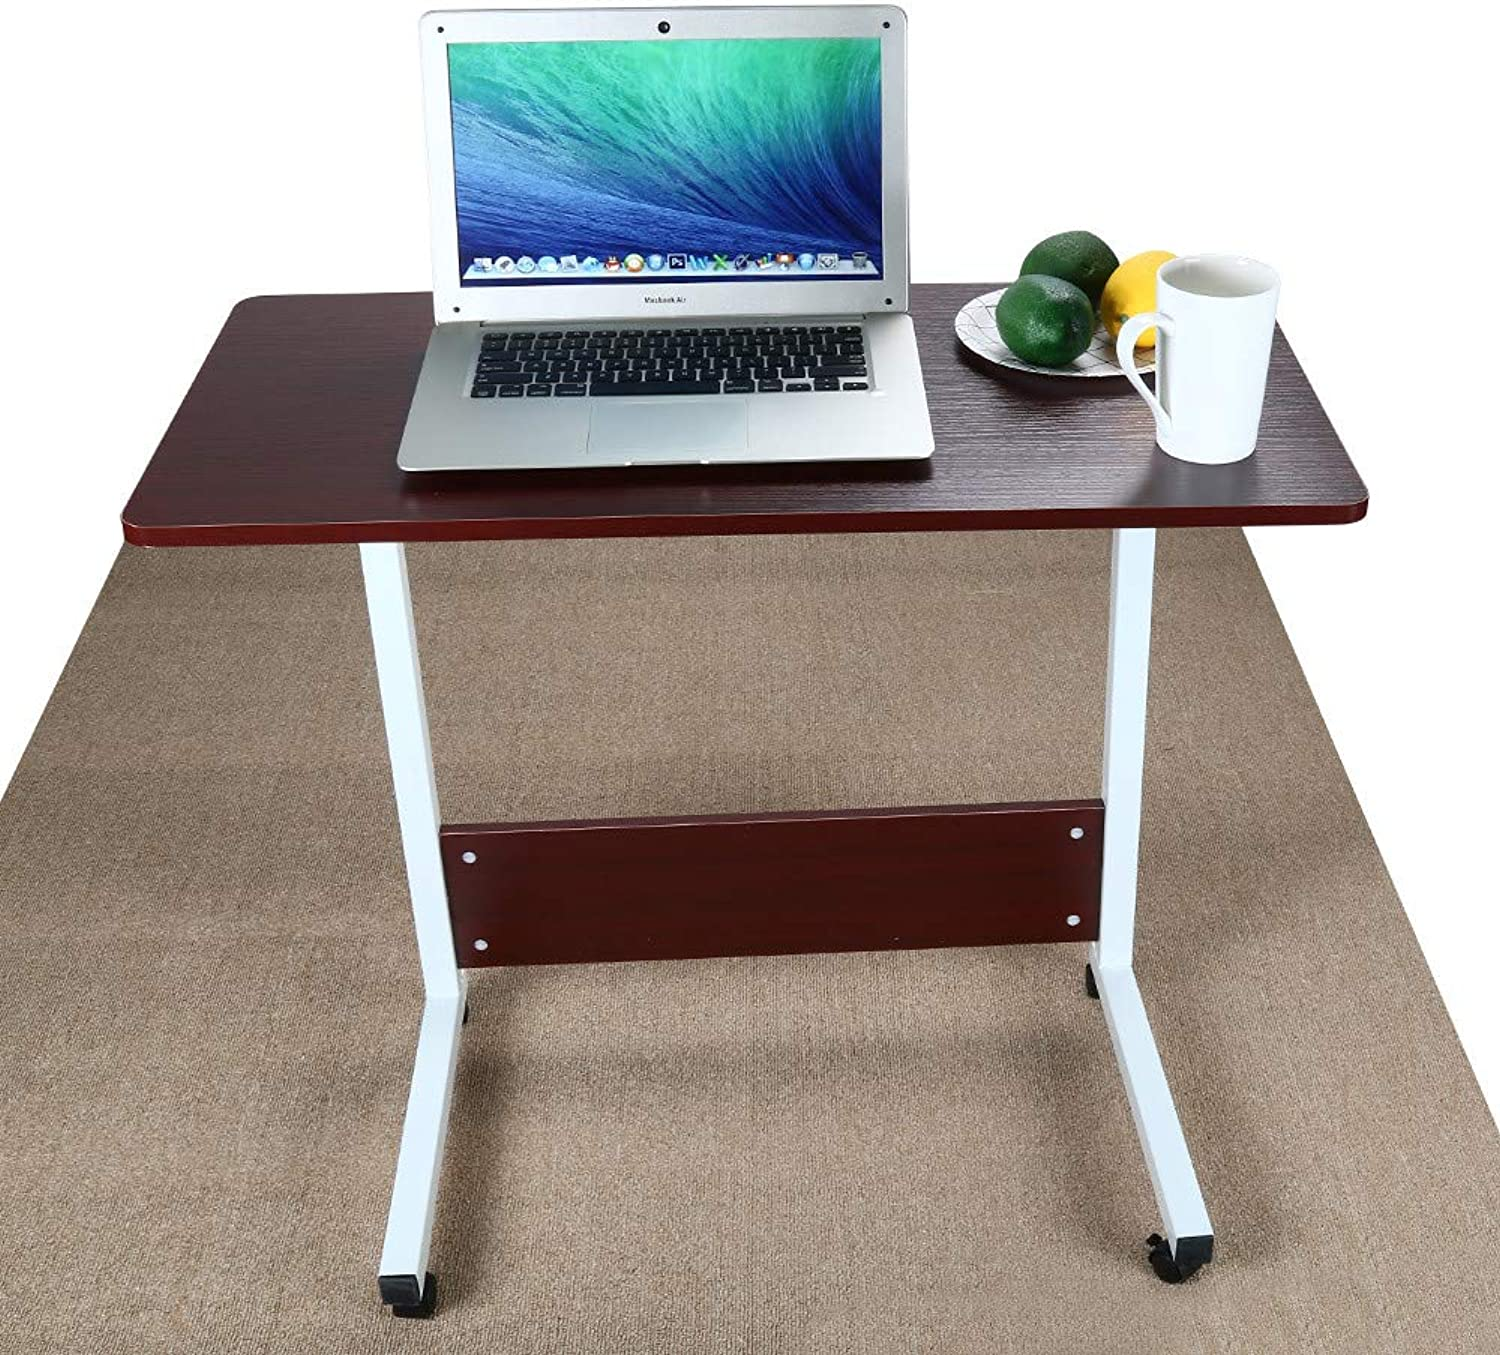 Fheaven 80cm x 40cm Home Office Workstation Desk Can Be Raised And Lowered Mobile Compact Computer Desk (80cm X 40cm)